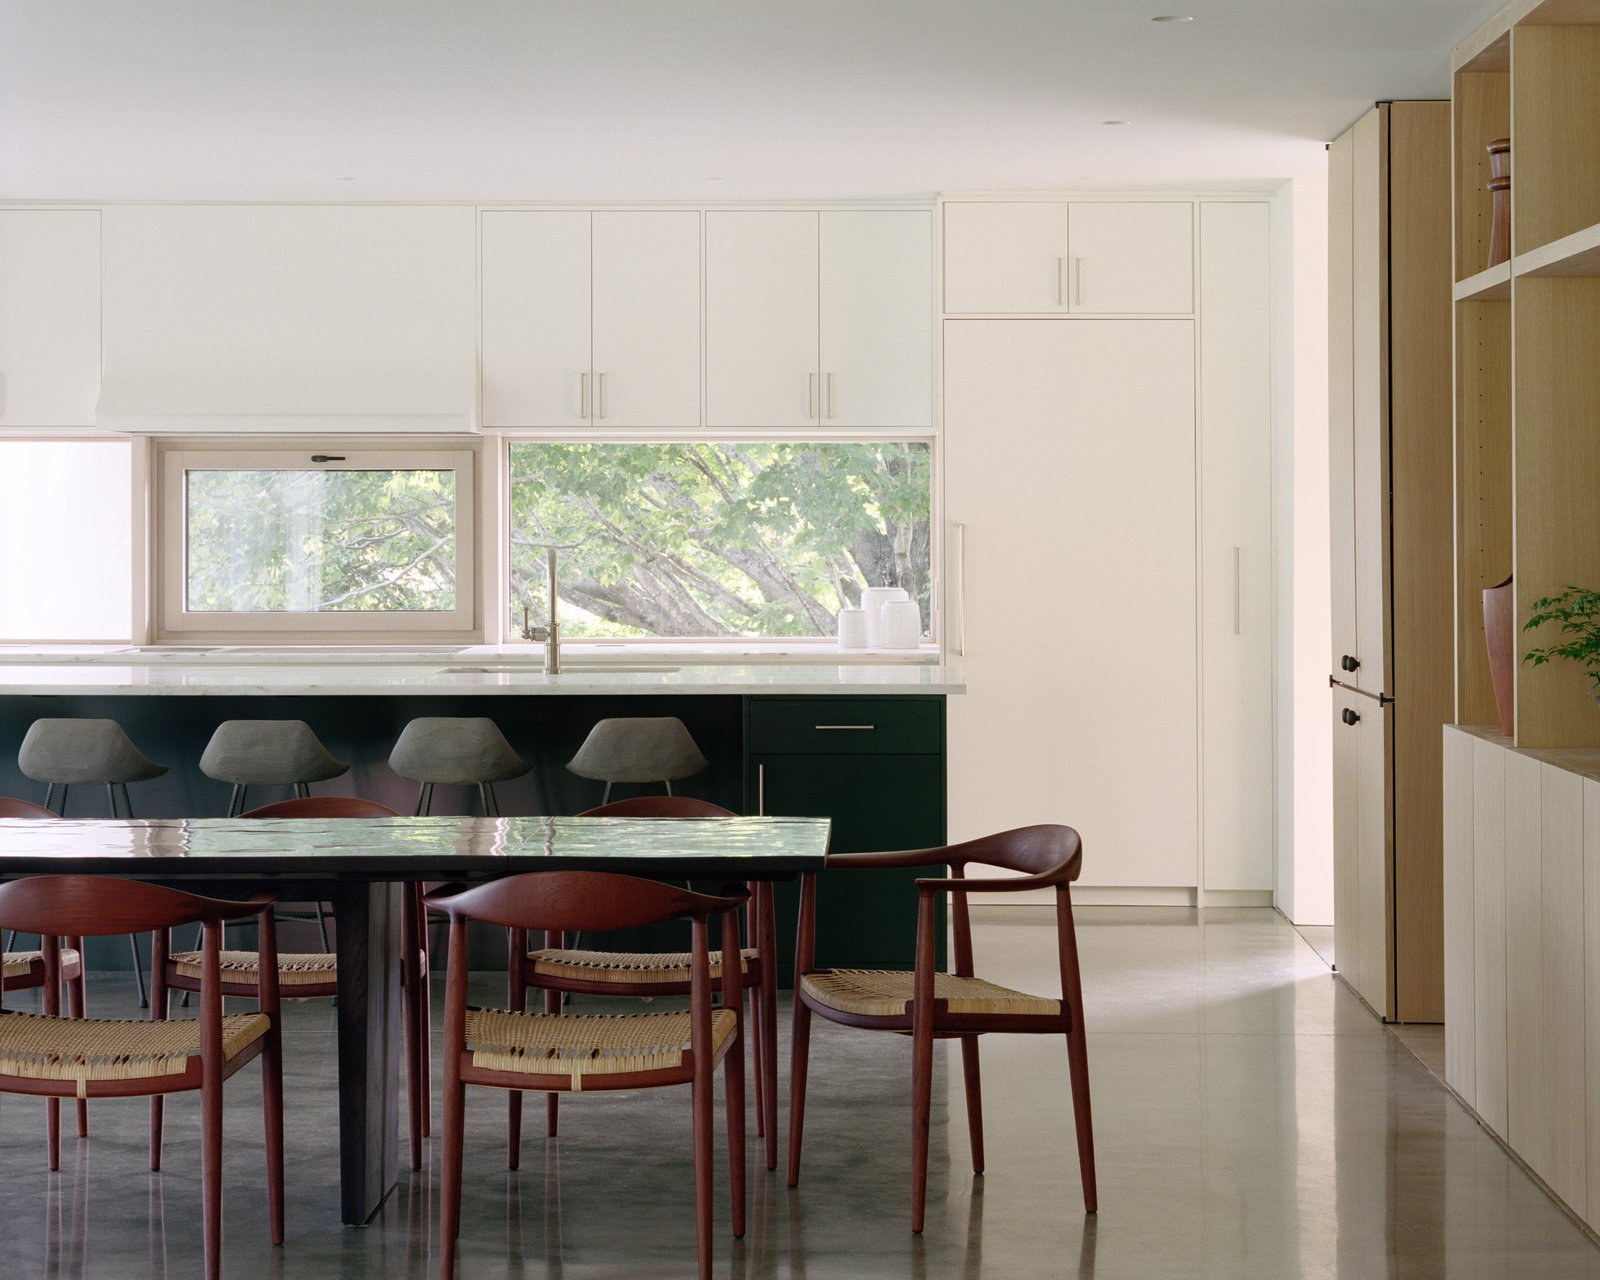 Sheffield residence by Vincent Appel / Of Possible kitchen and dining room